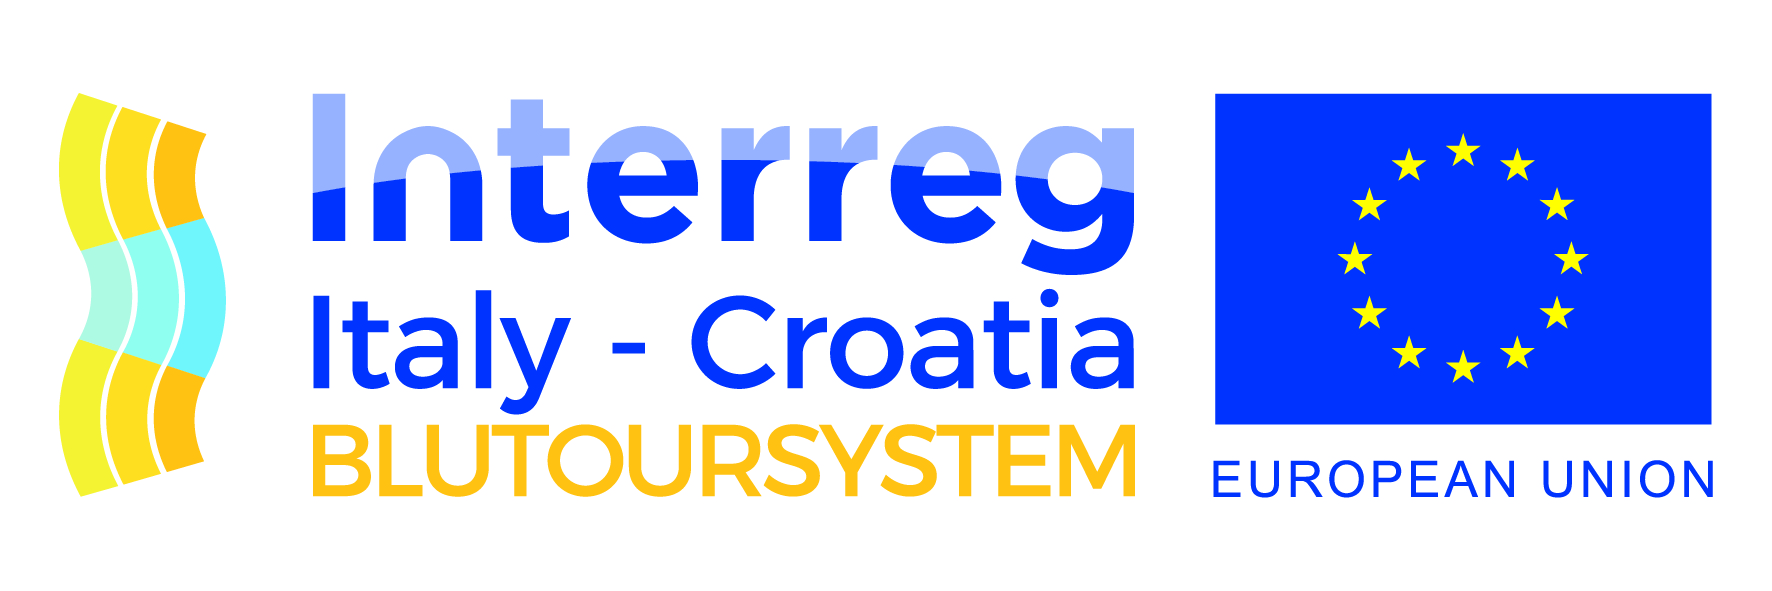 BLUTOURSYSTEM (Knowledge platform, skills and creative synergies for blue tourism ecosystem development)